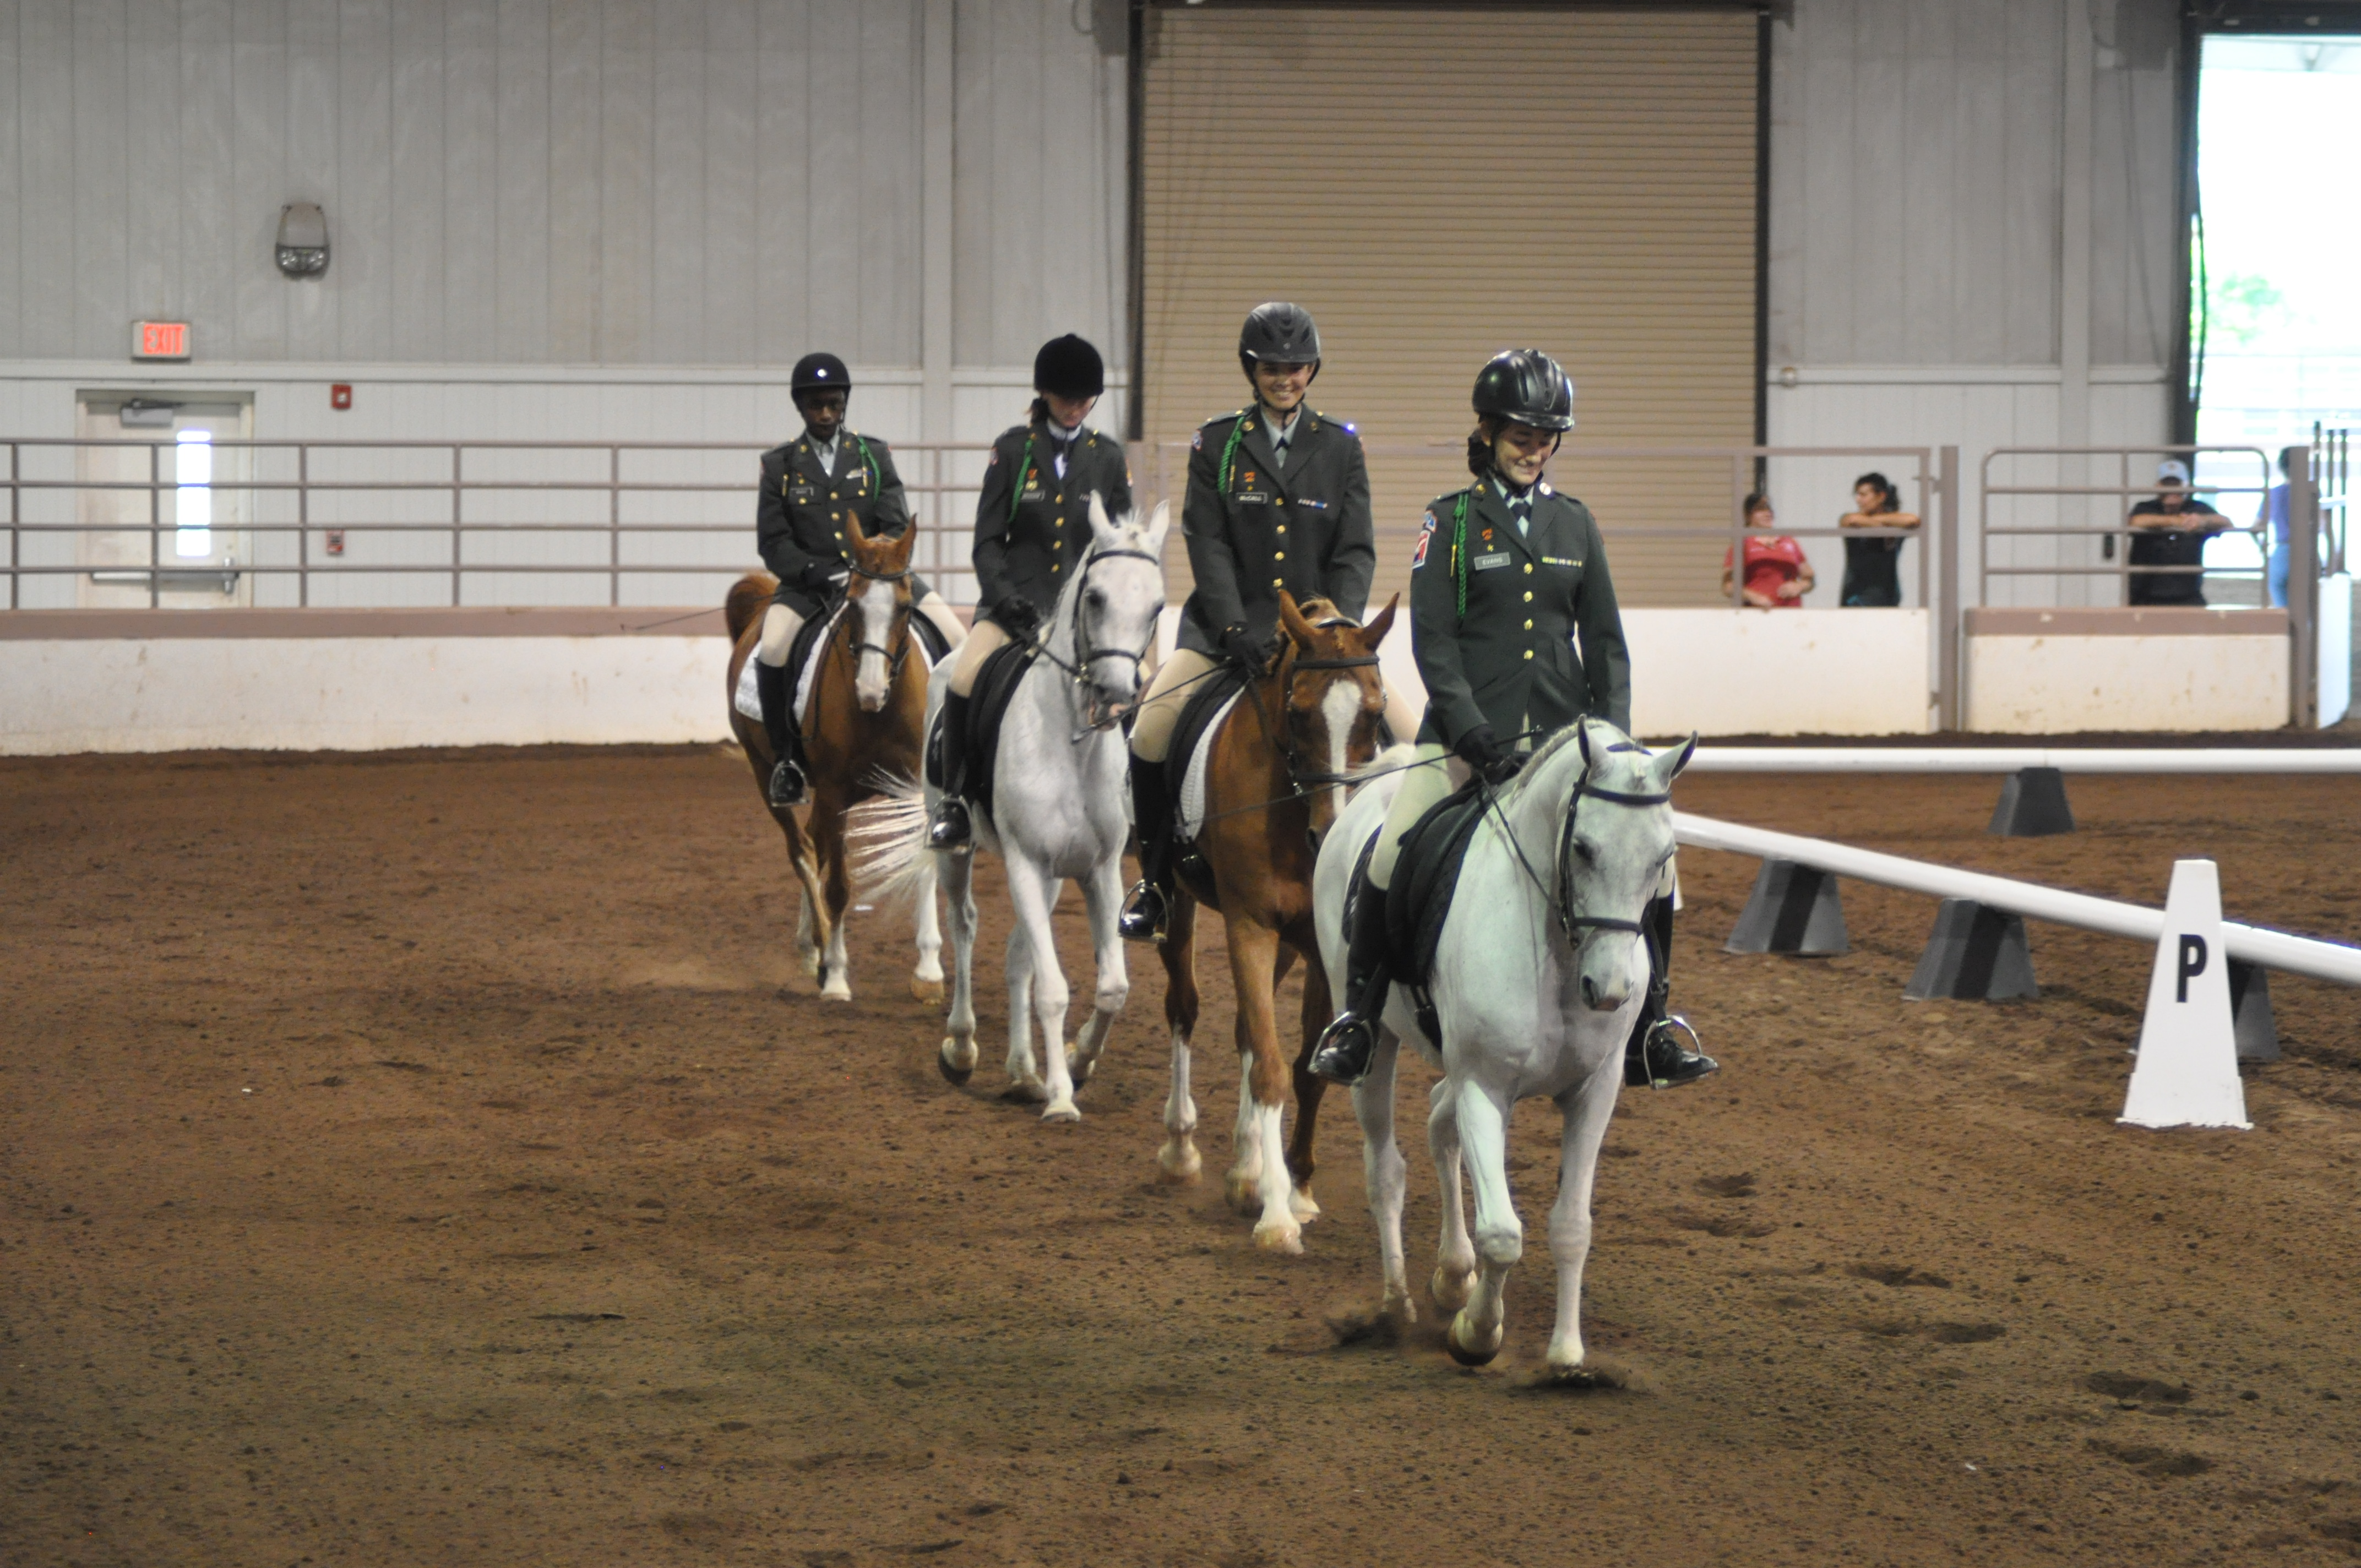 Four students riding horses in an equestrian competition.